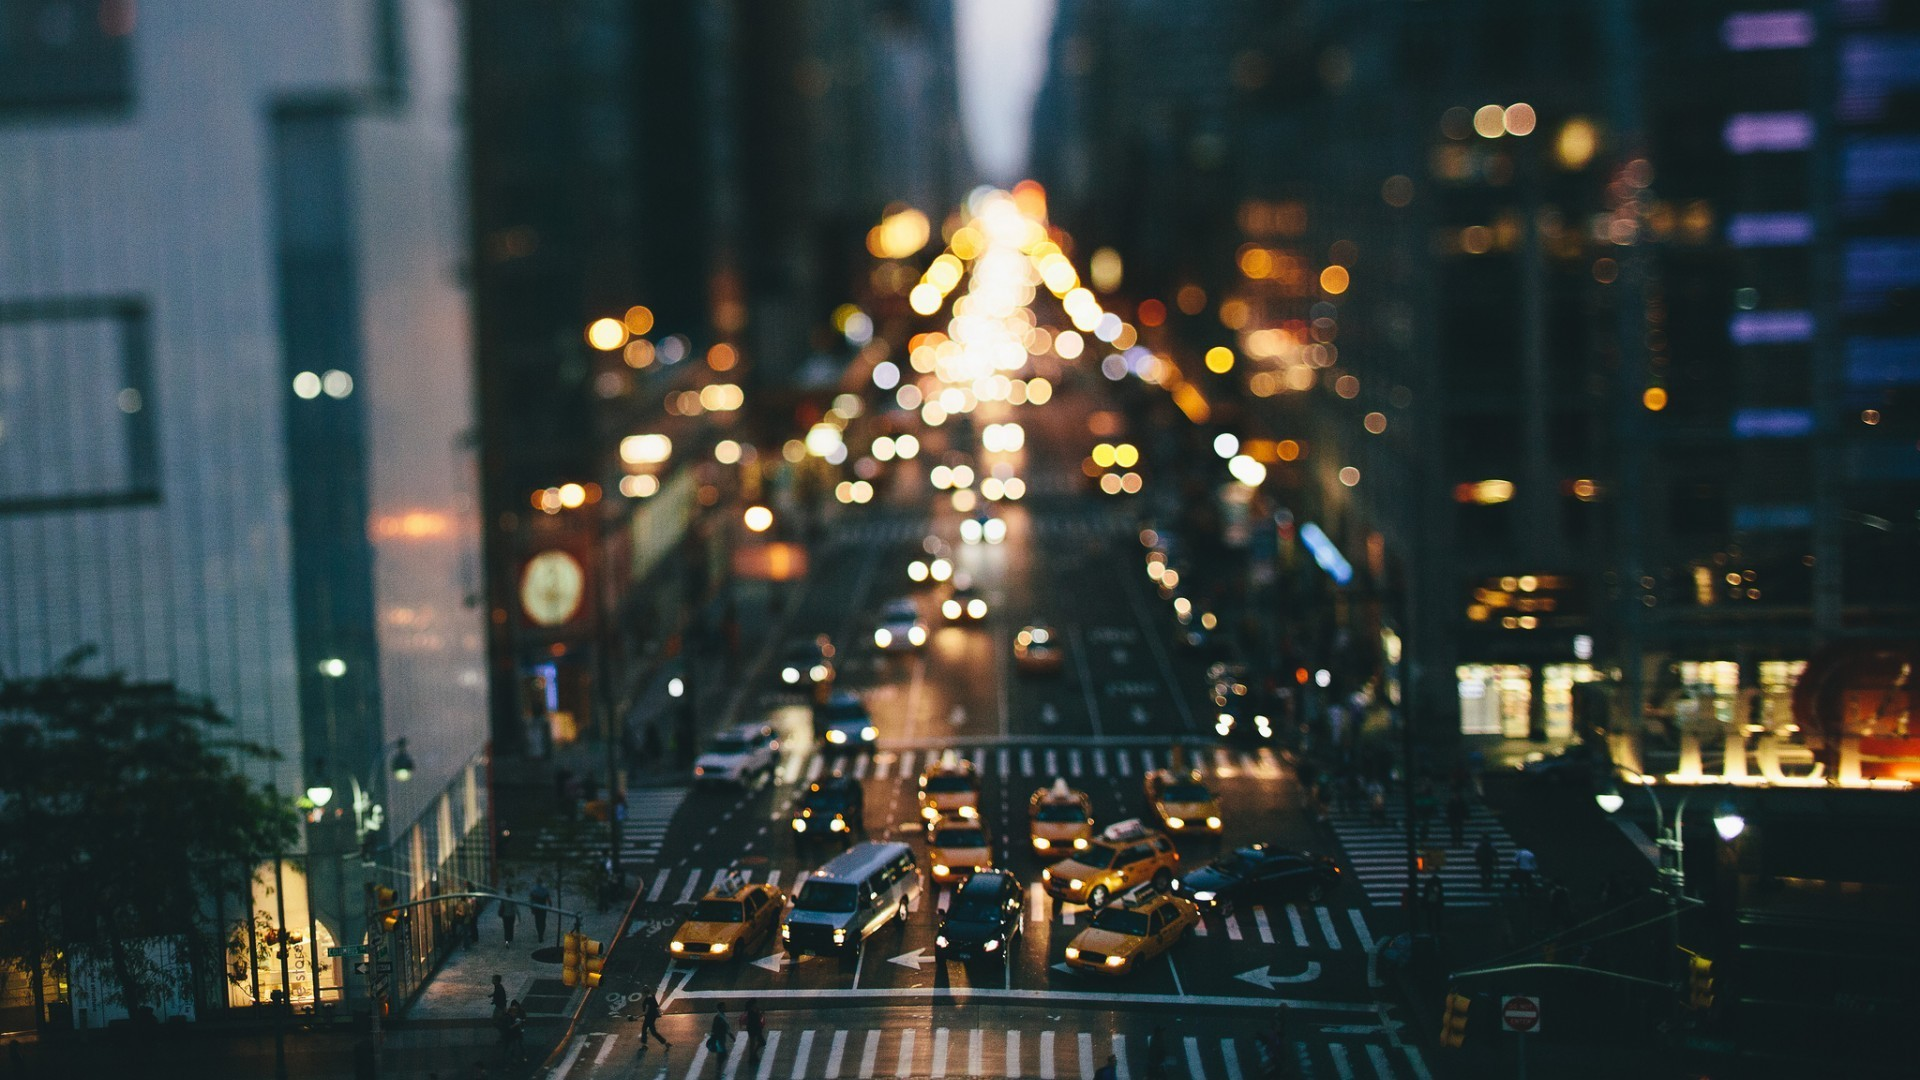 Street Traffic Car Tilt Shift Taxi New York City New York City Wallpaper Hd 1920x1080 Wallpaper Teahub Io